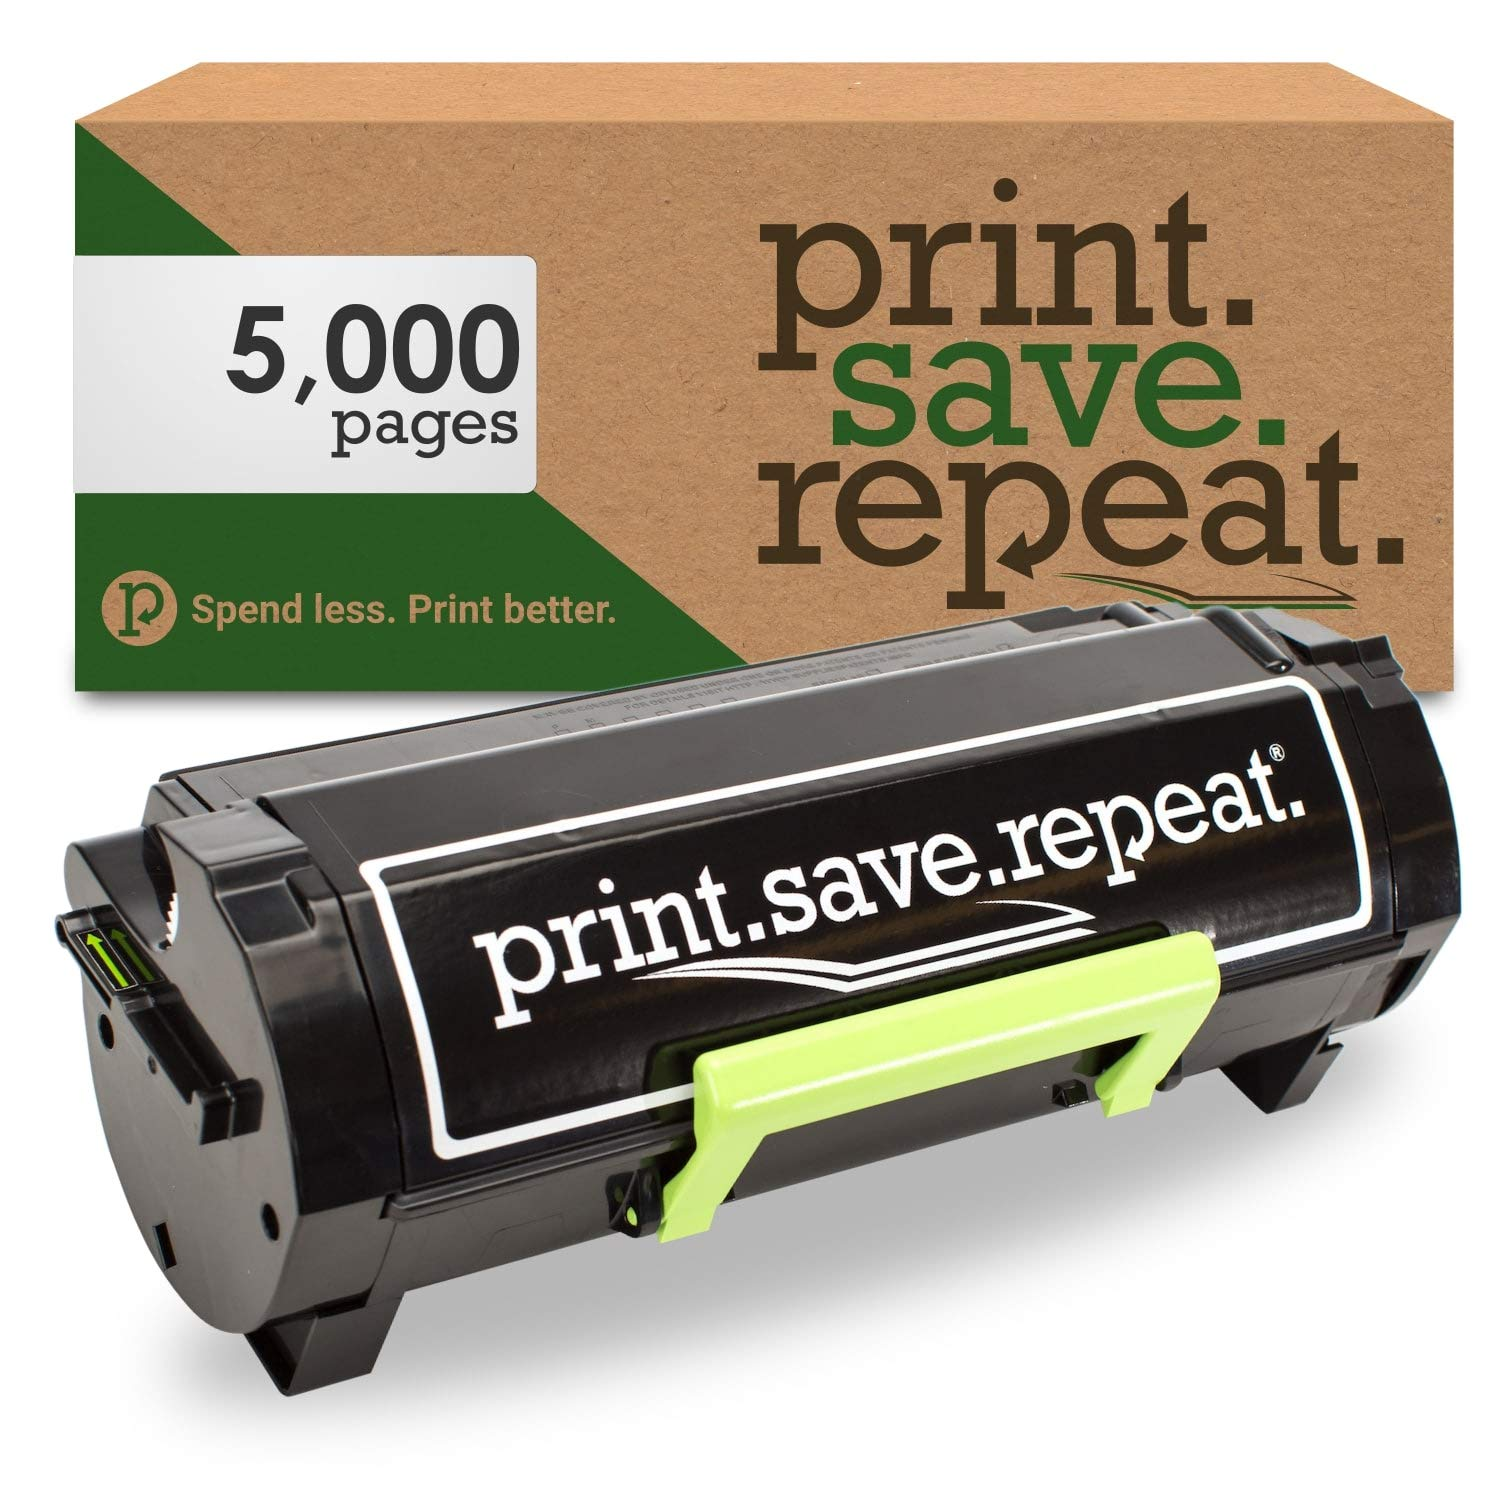 Print.Save.Repeat. Lexmark 500HG High Yield Remanufactured Toner Cartridge for MS310, MS312, MS315, MS410, MS415, MS510, MS610 [5,000 Pages]